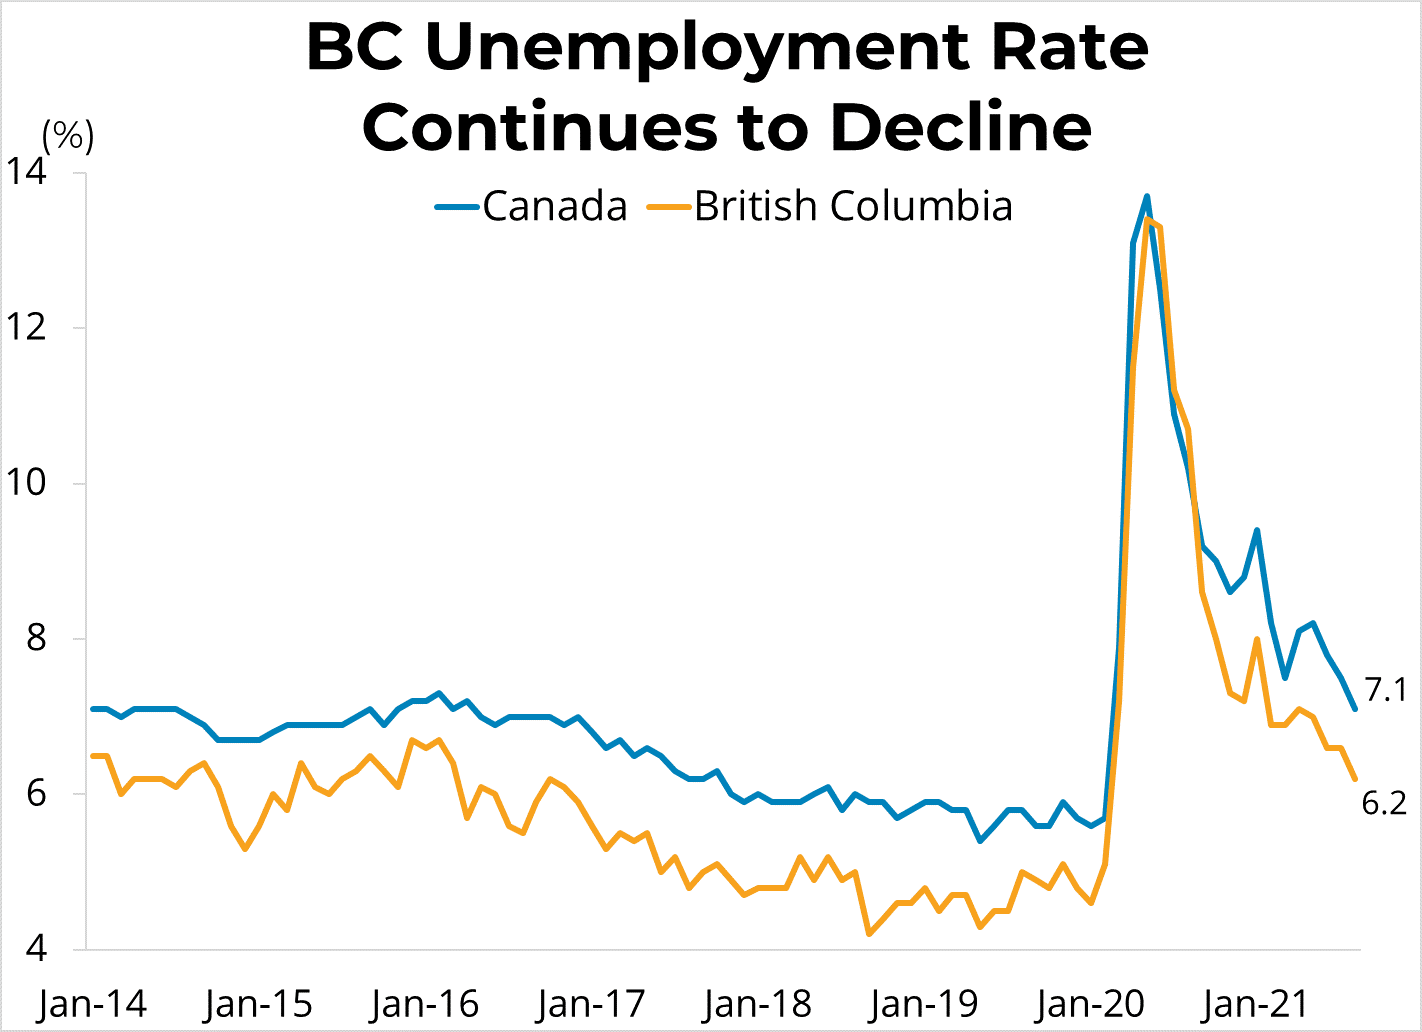 BC Unemployment Rate Continues To Decline